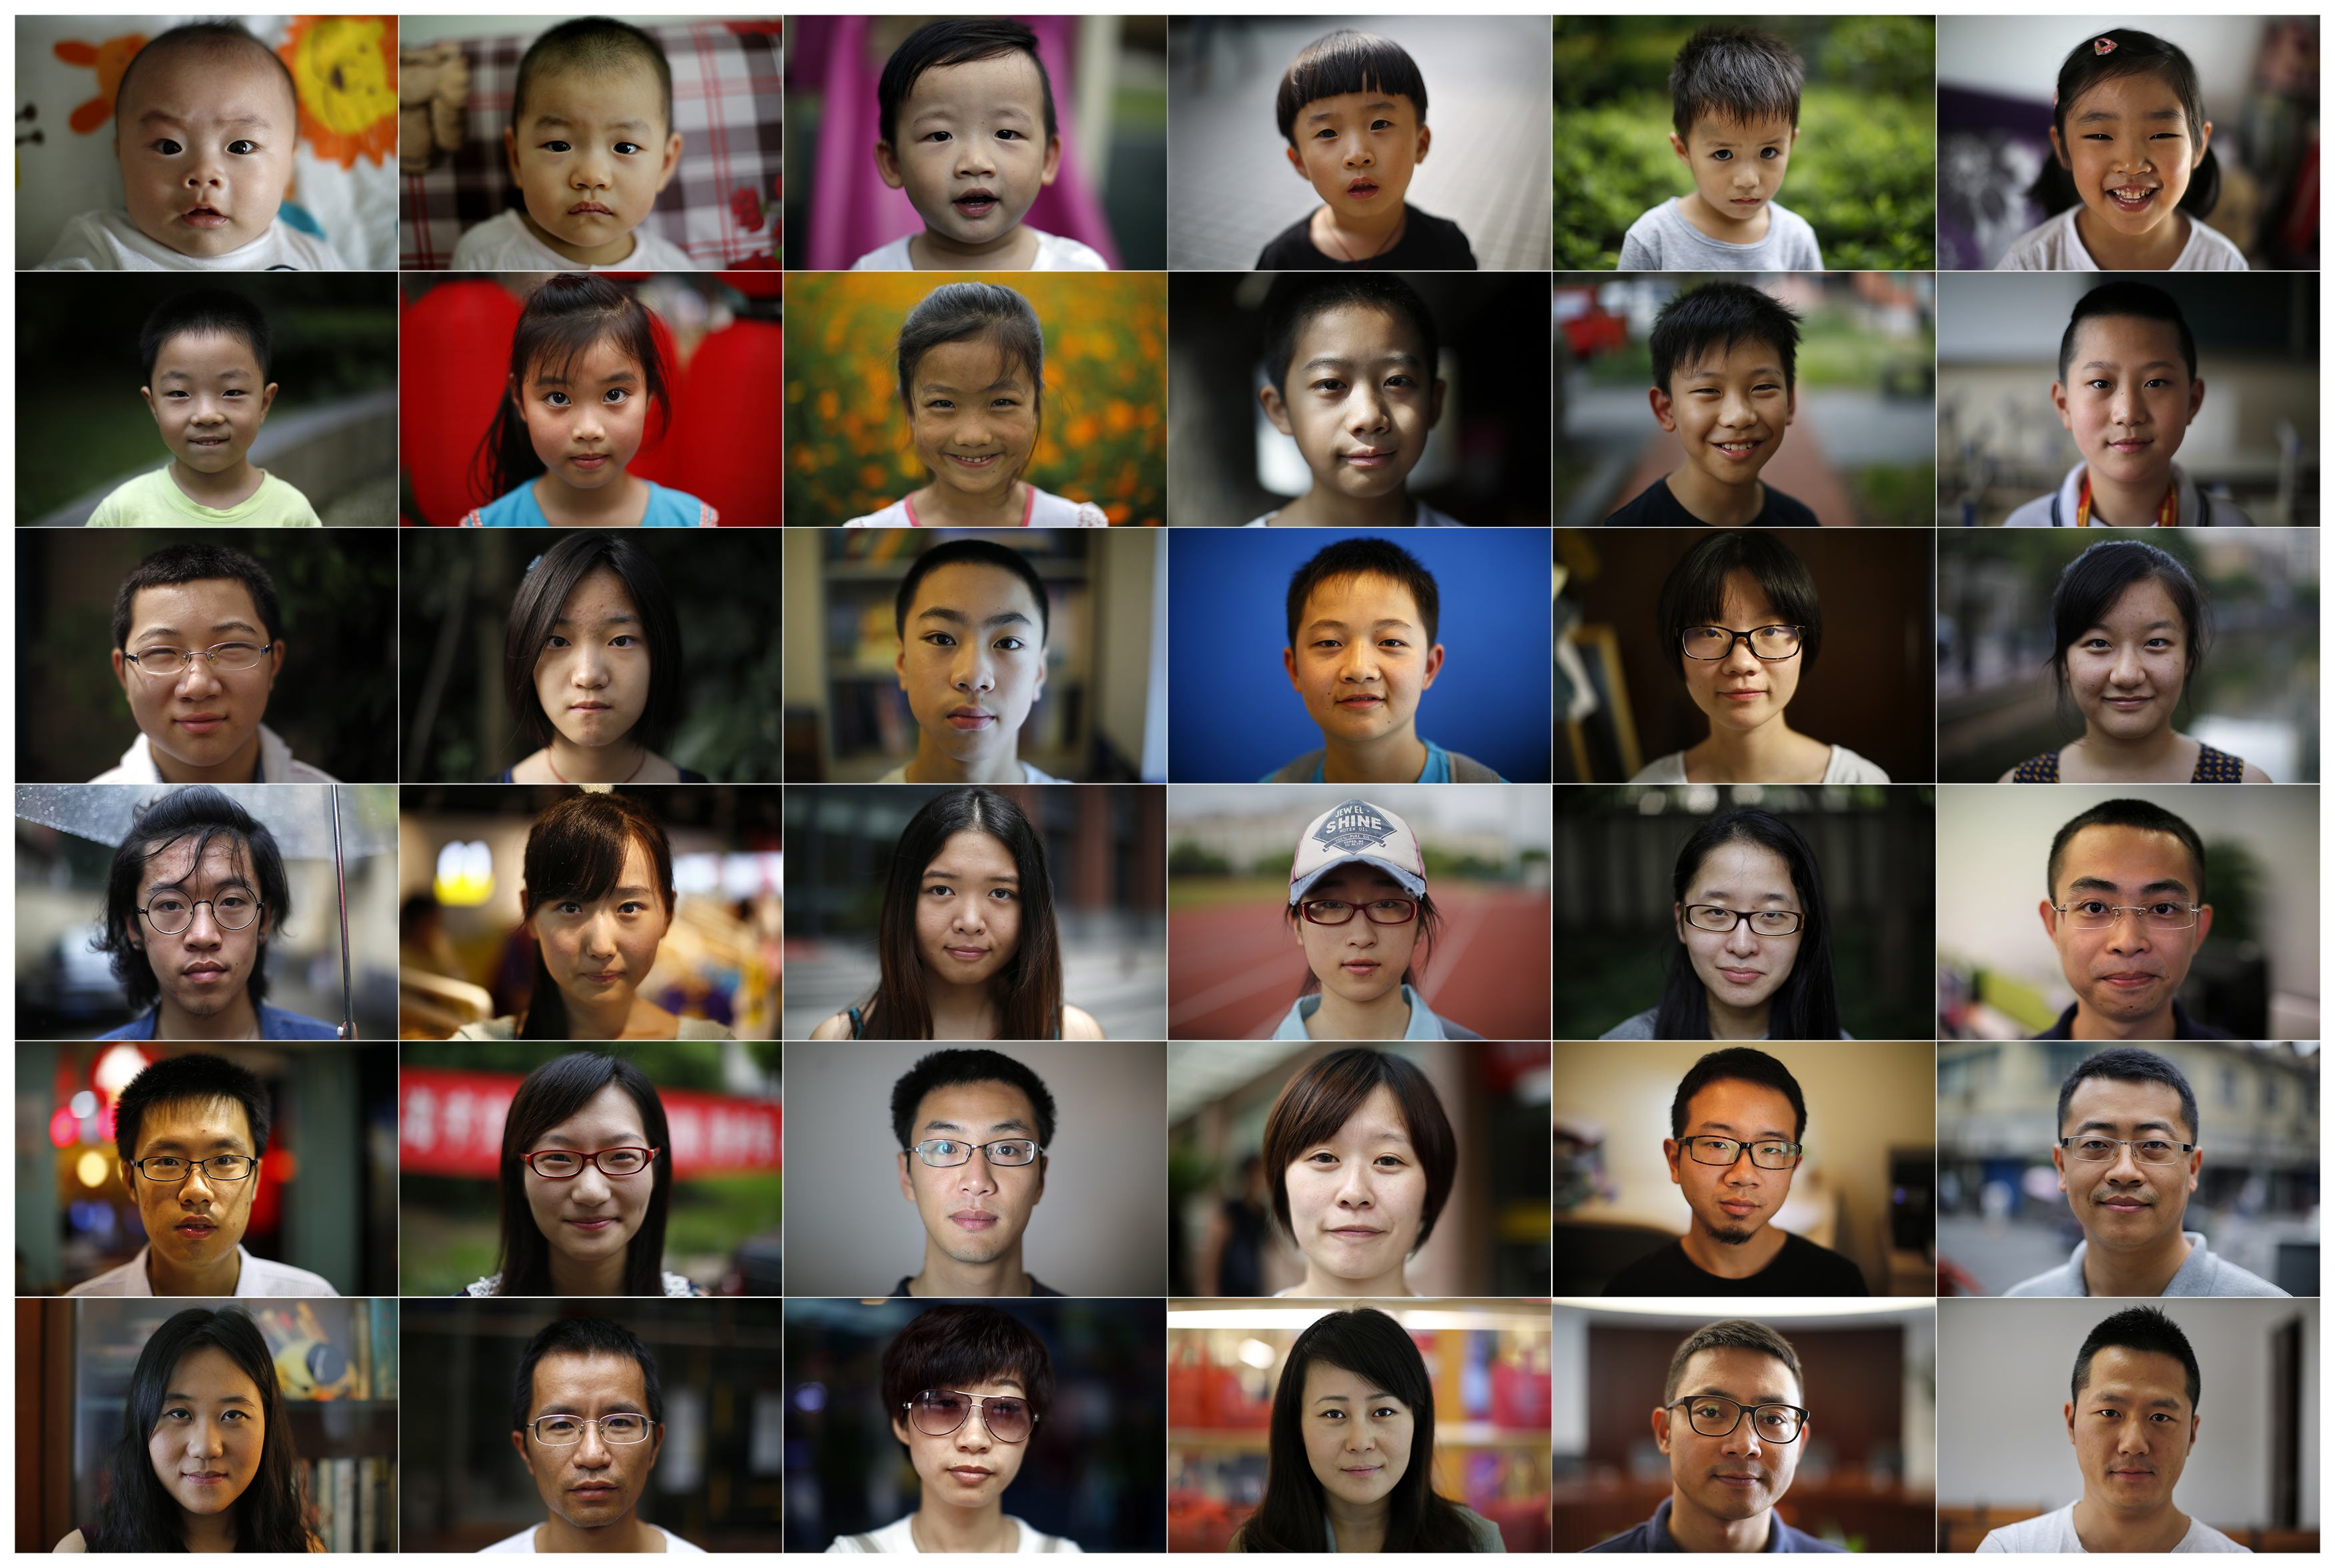 36 years of China's one child policy